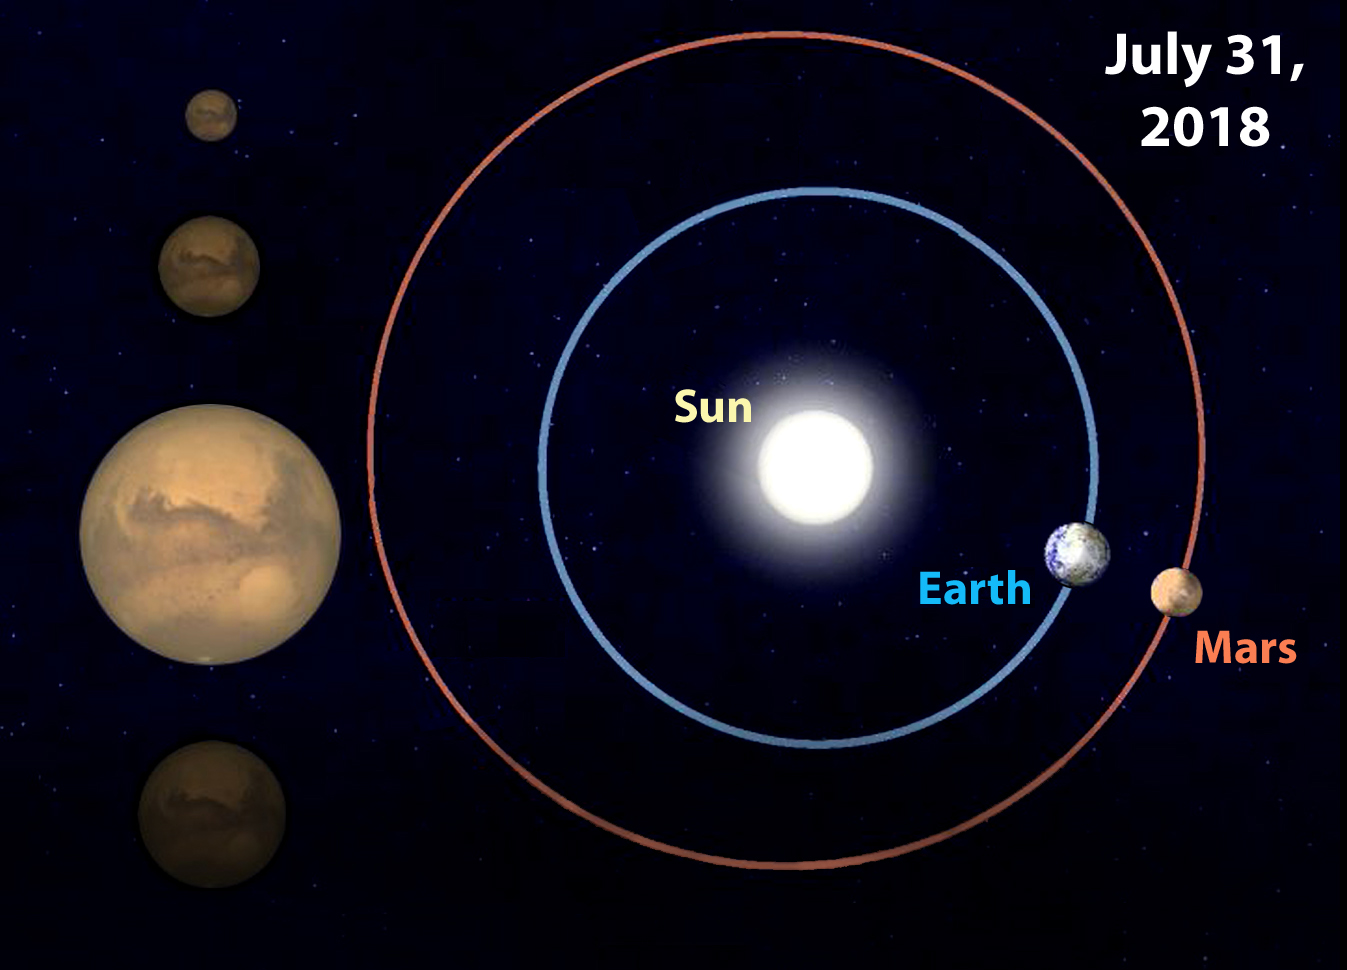 Mars-Earth in July 2018